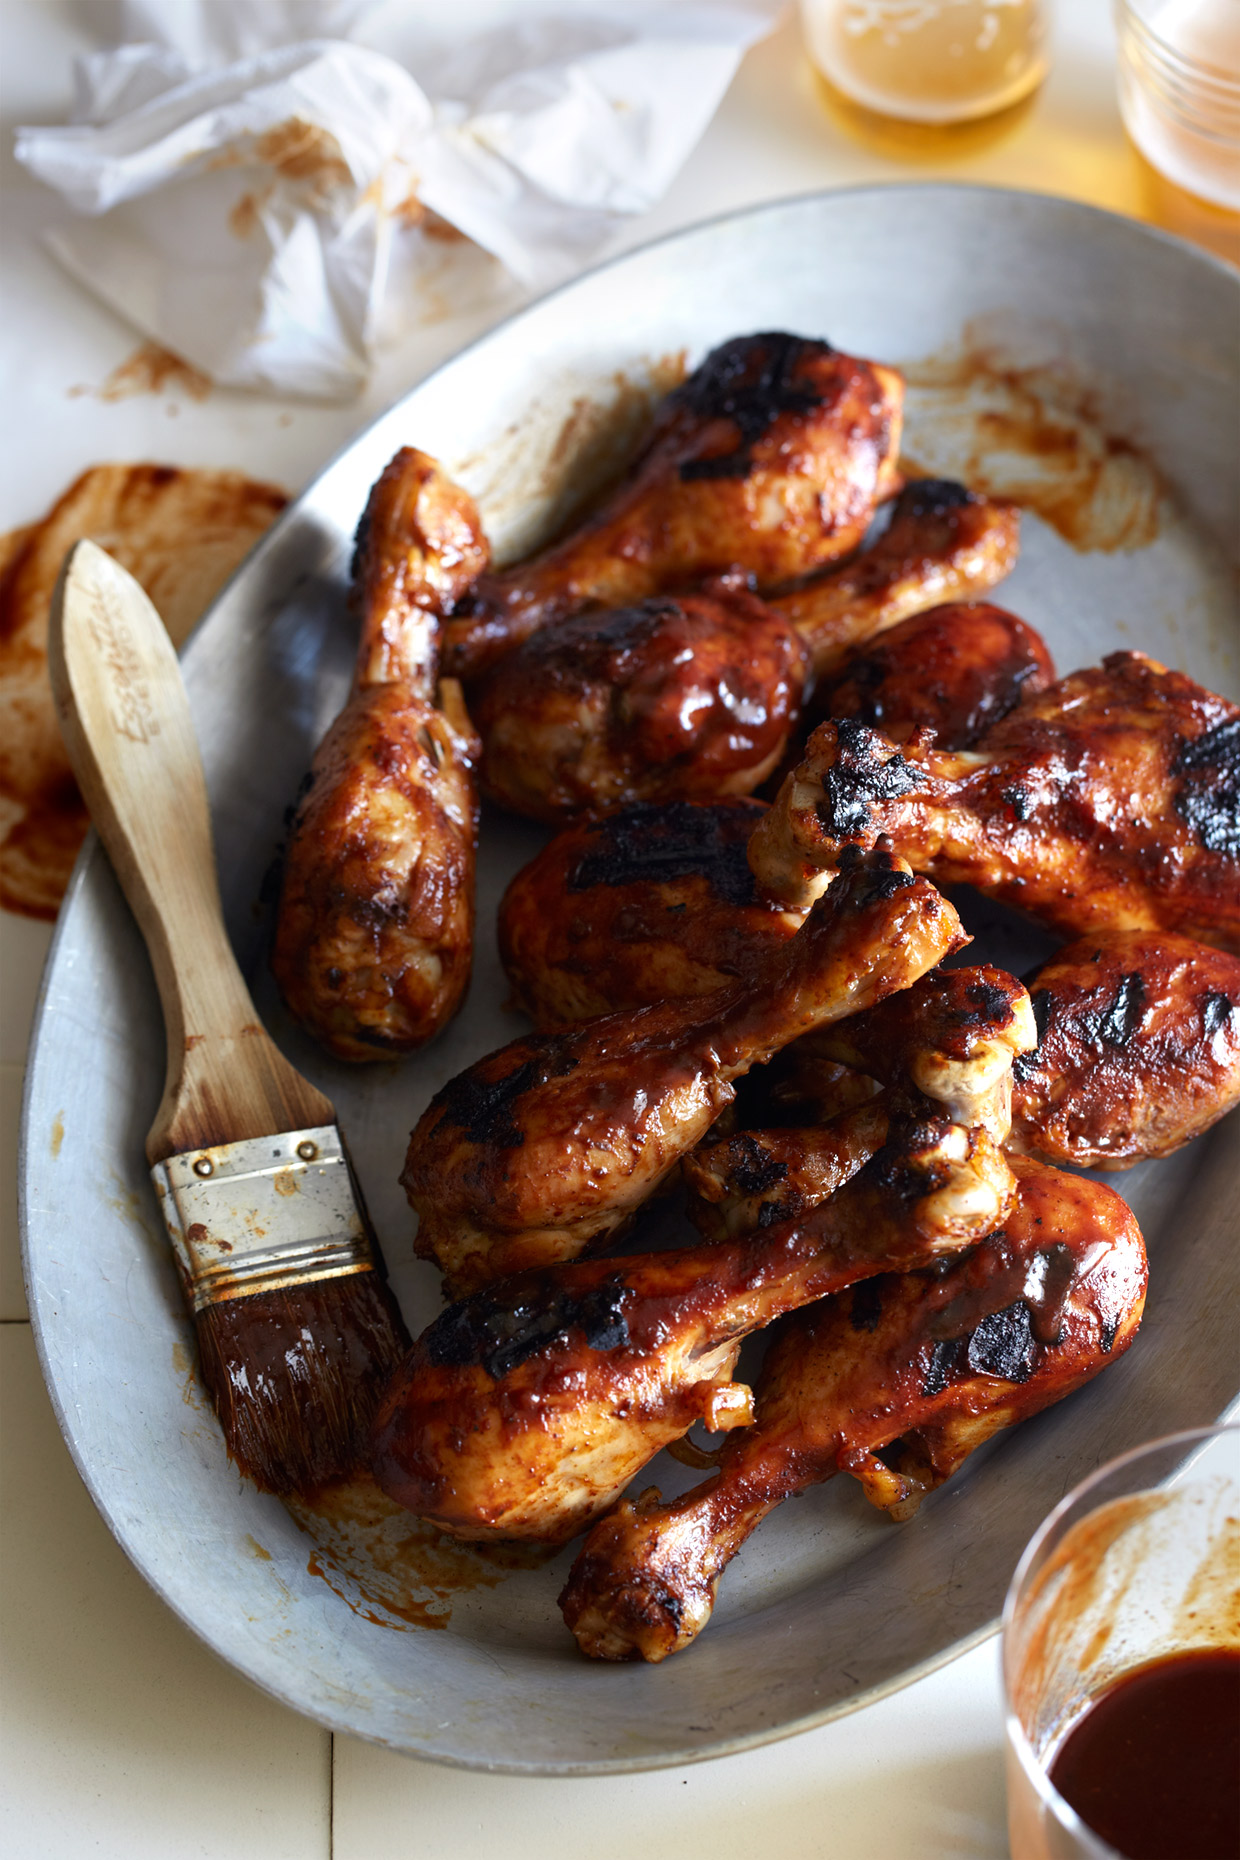 Grilled_Chicken_Wings_Food_Photographer